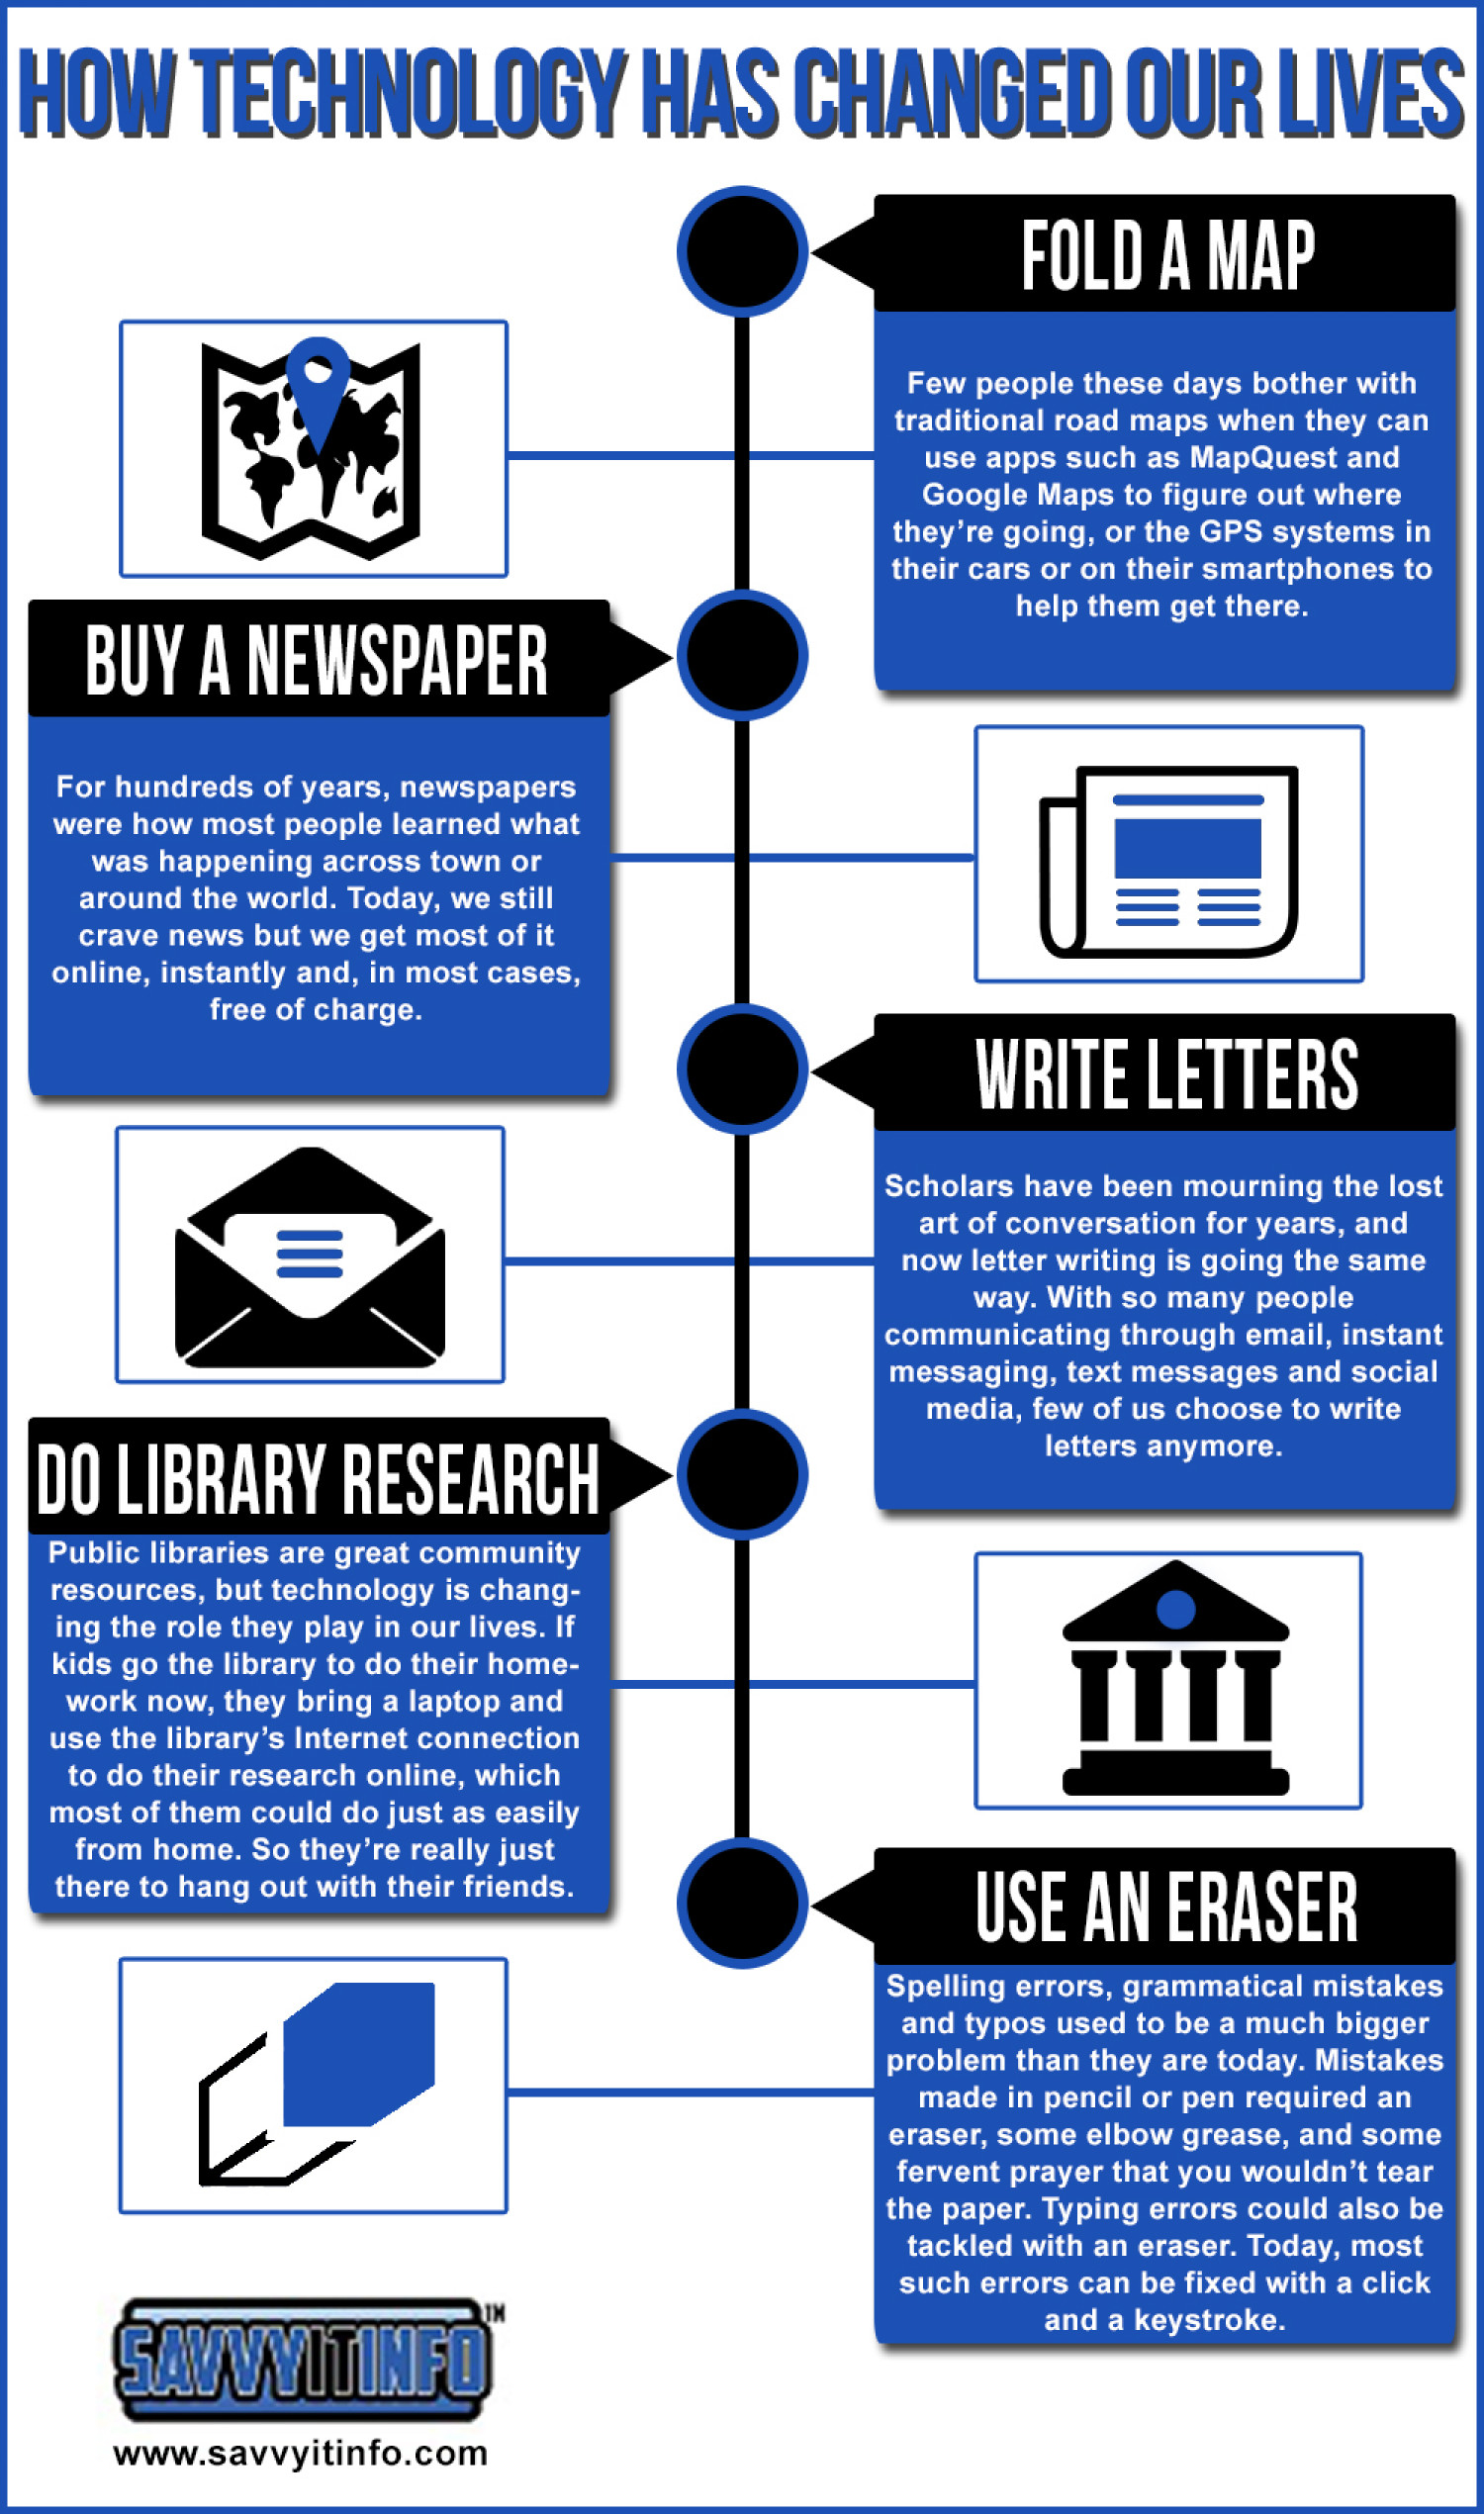 How has technology changed our lives? Infographic